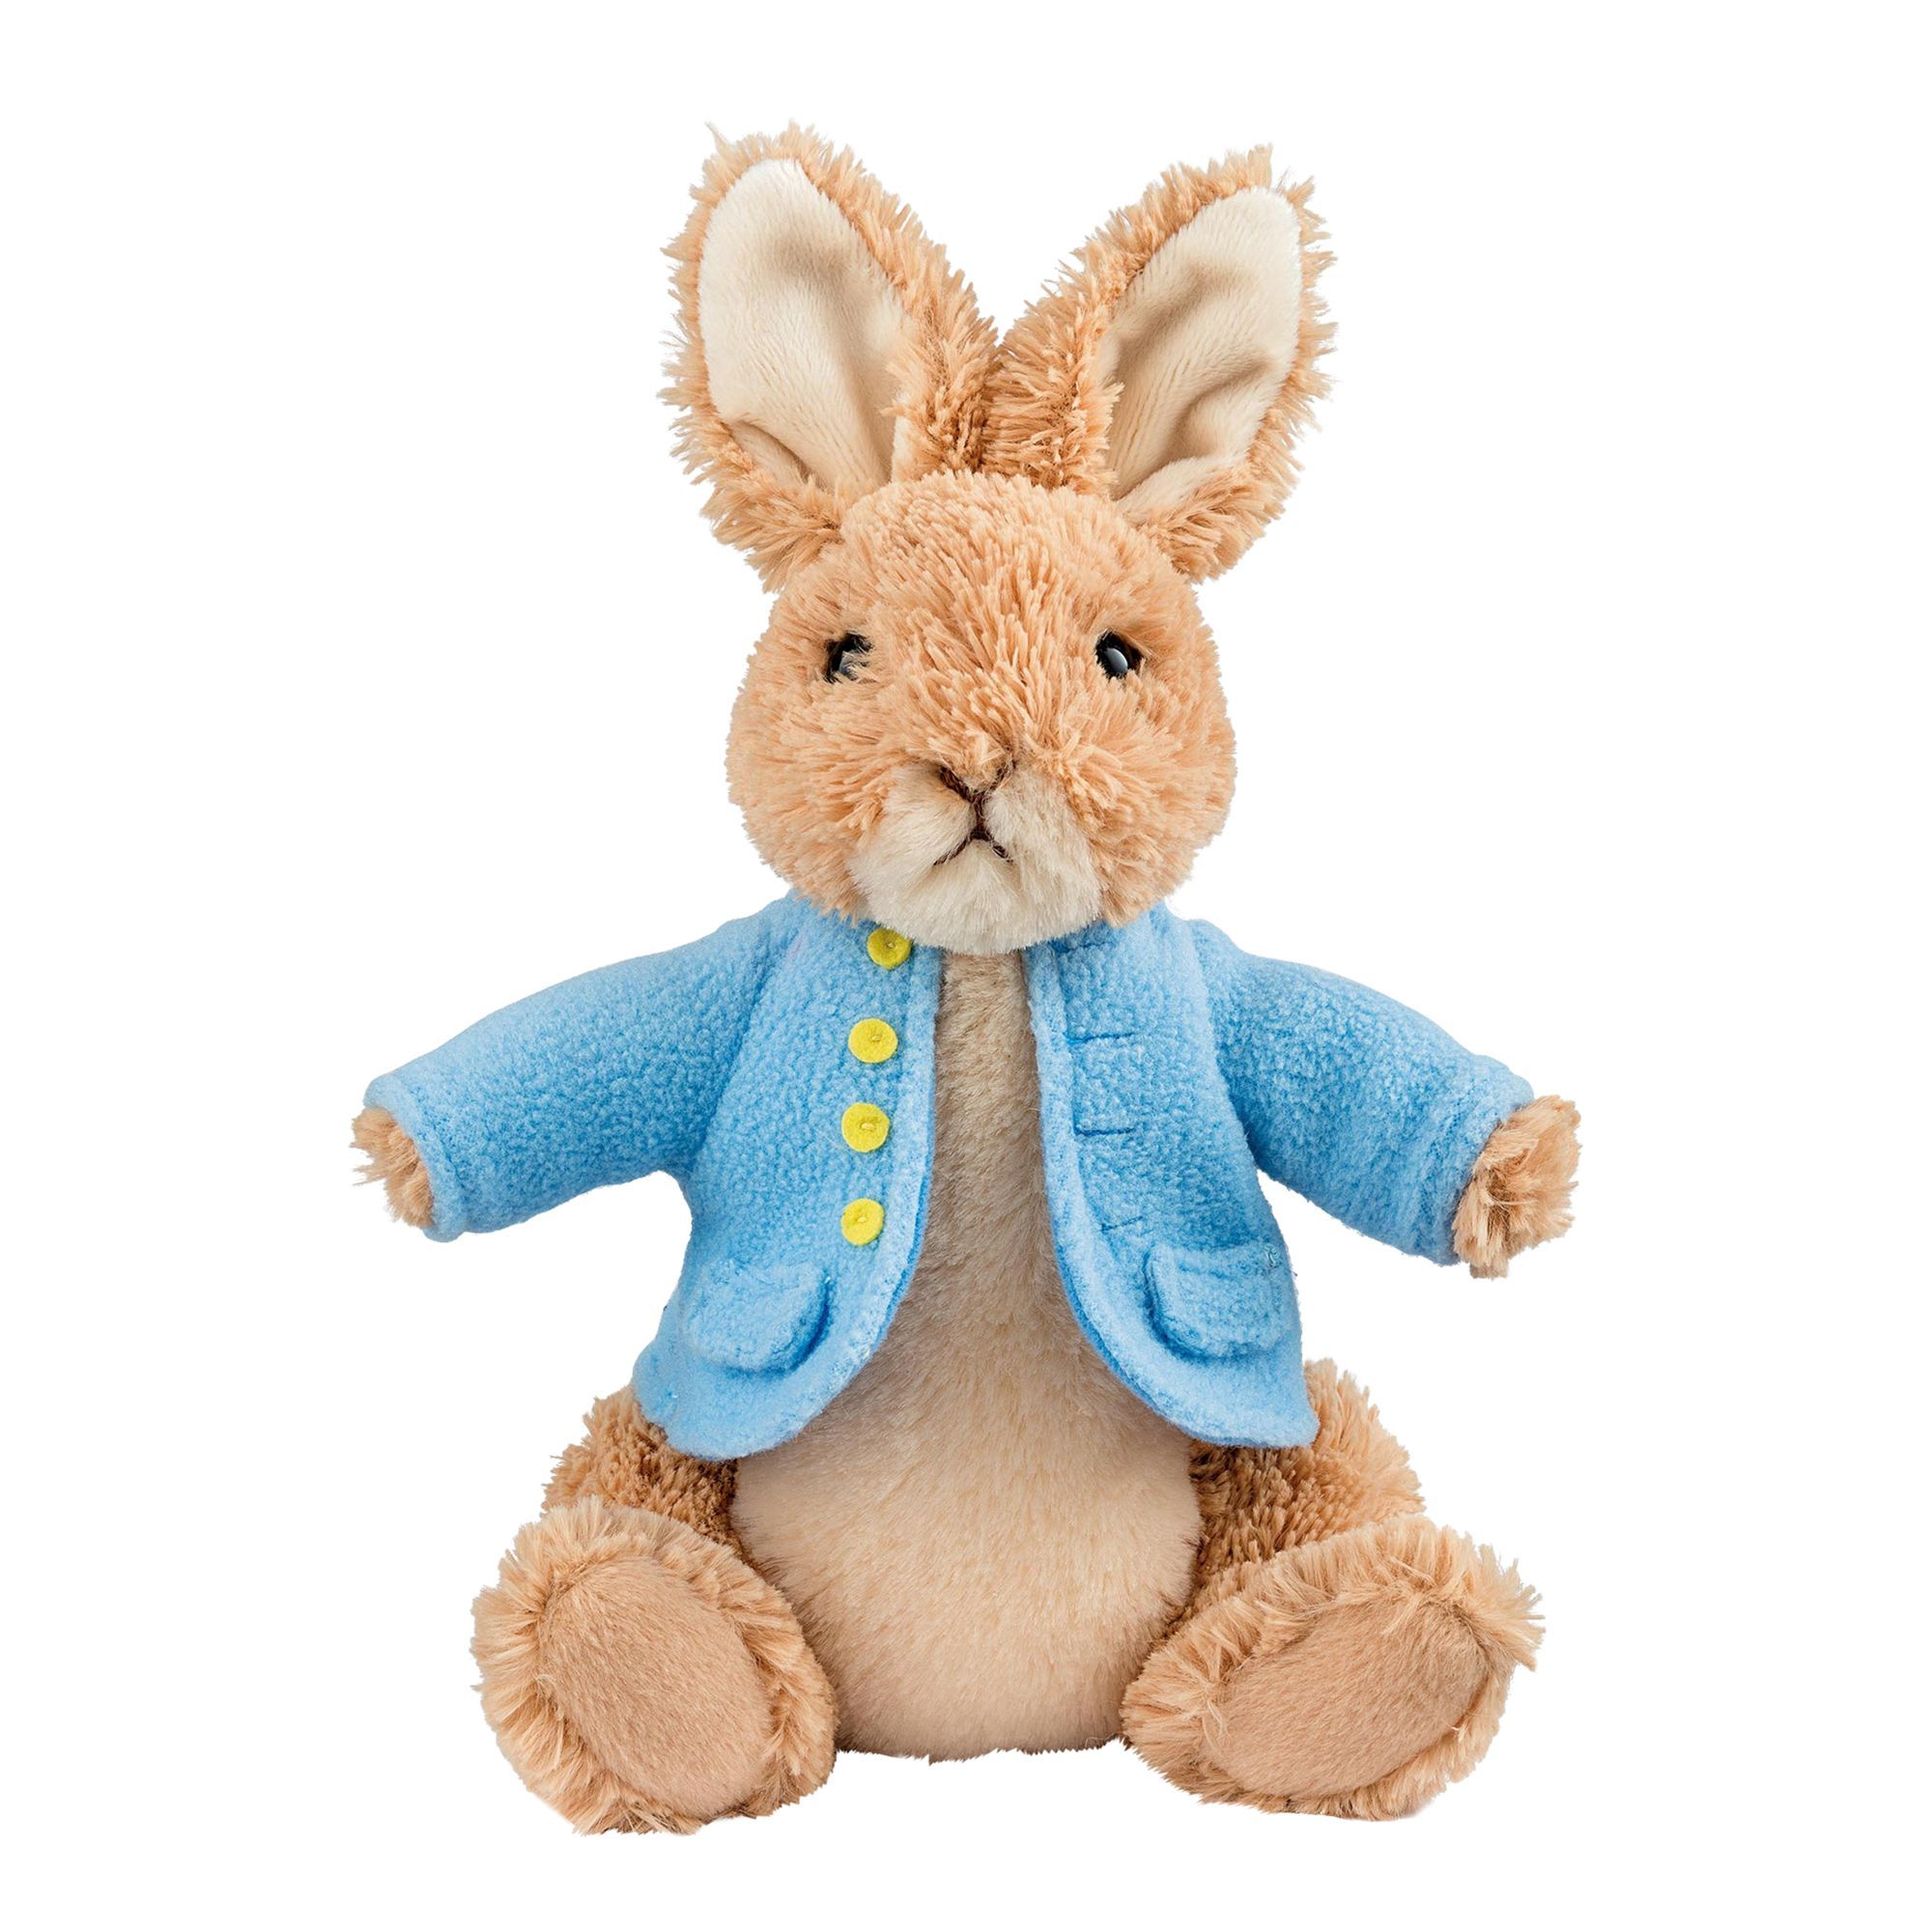 """OFFICIAL GUND Beatrix Potter Flopsy Large 12/"""" Plush Soft Toy A26811 NEW"""